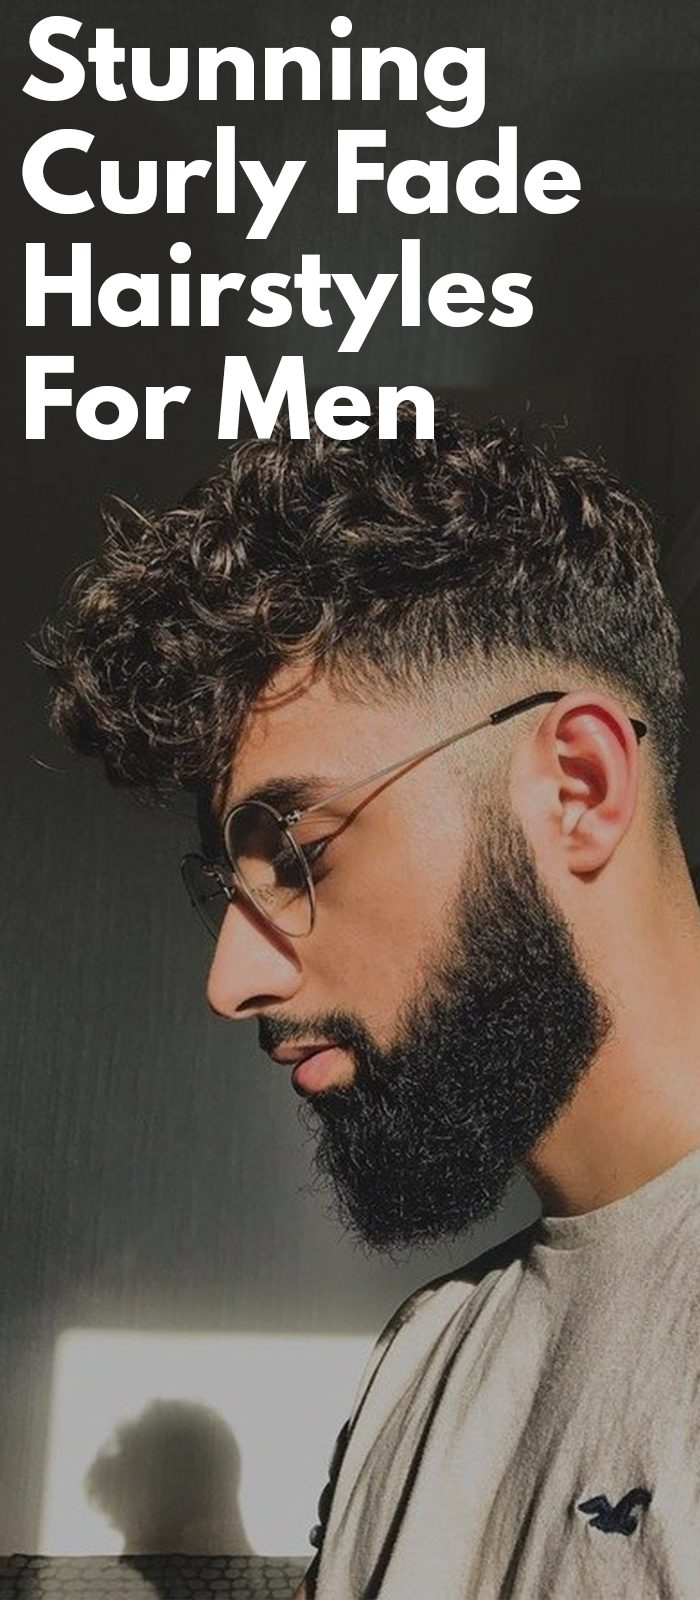 Stunning Curly Fade Hairstyles For Men